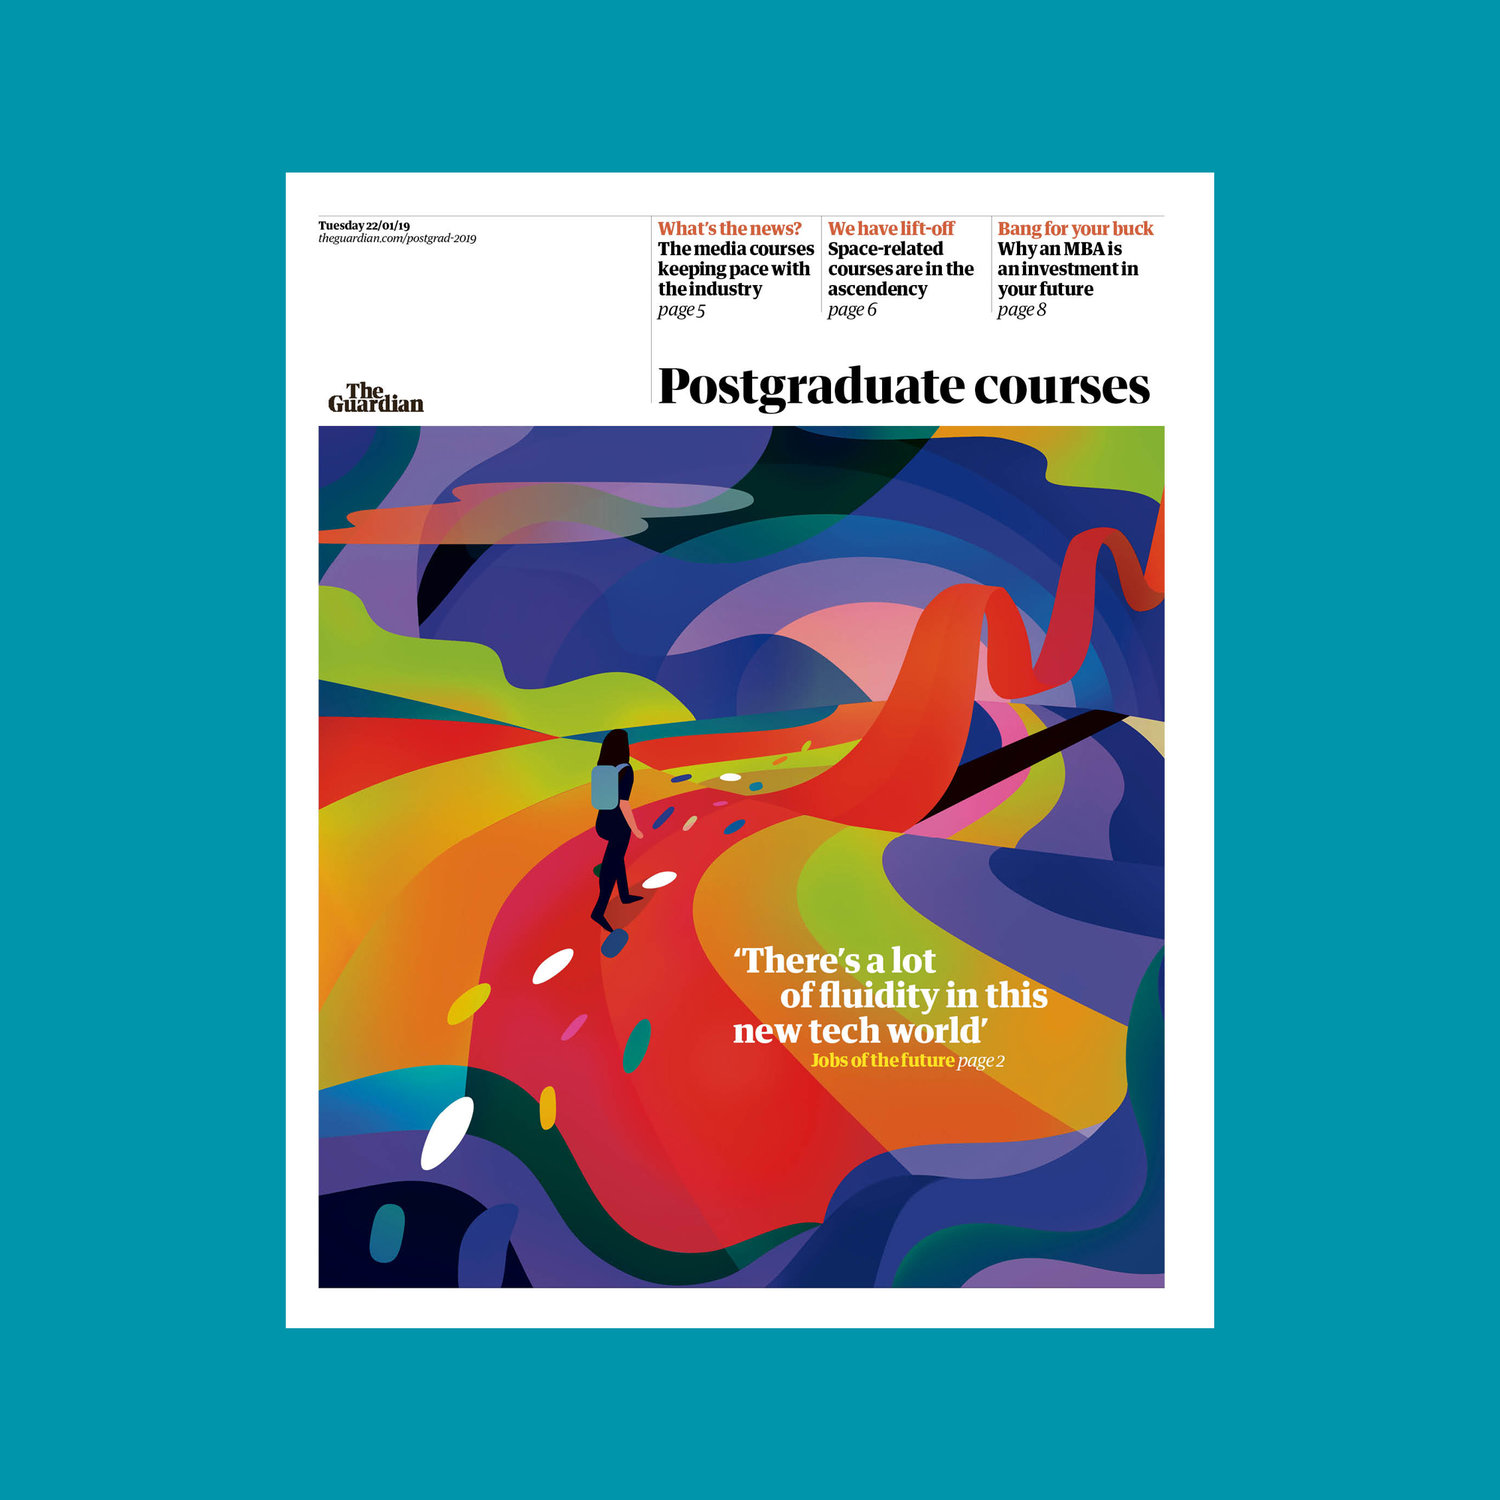 Cover Illustration for The Guardian Post Graduate section